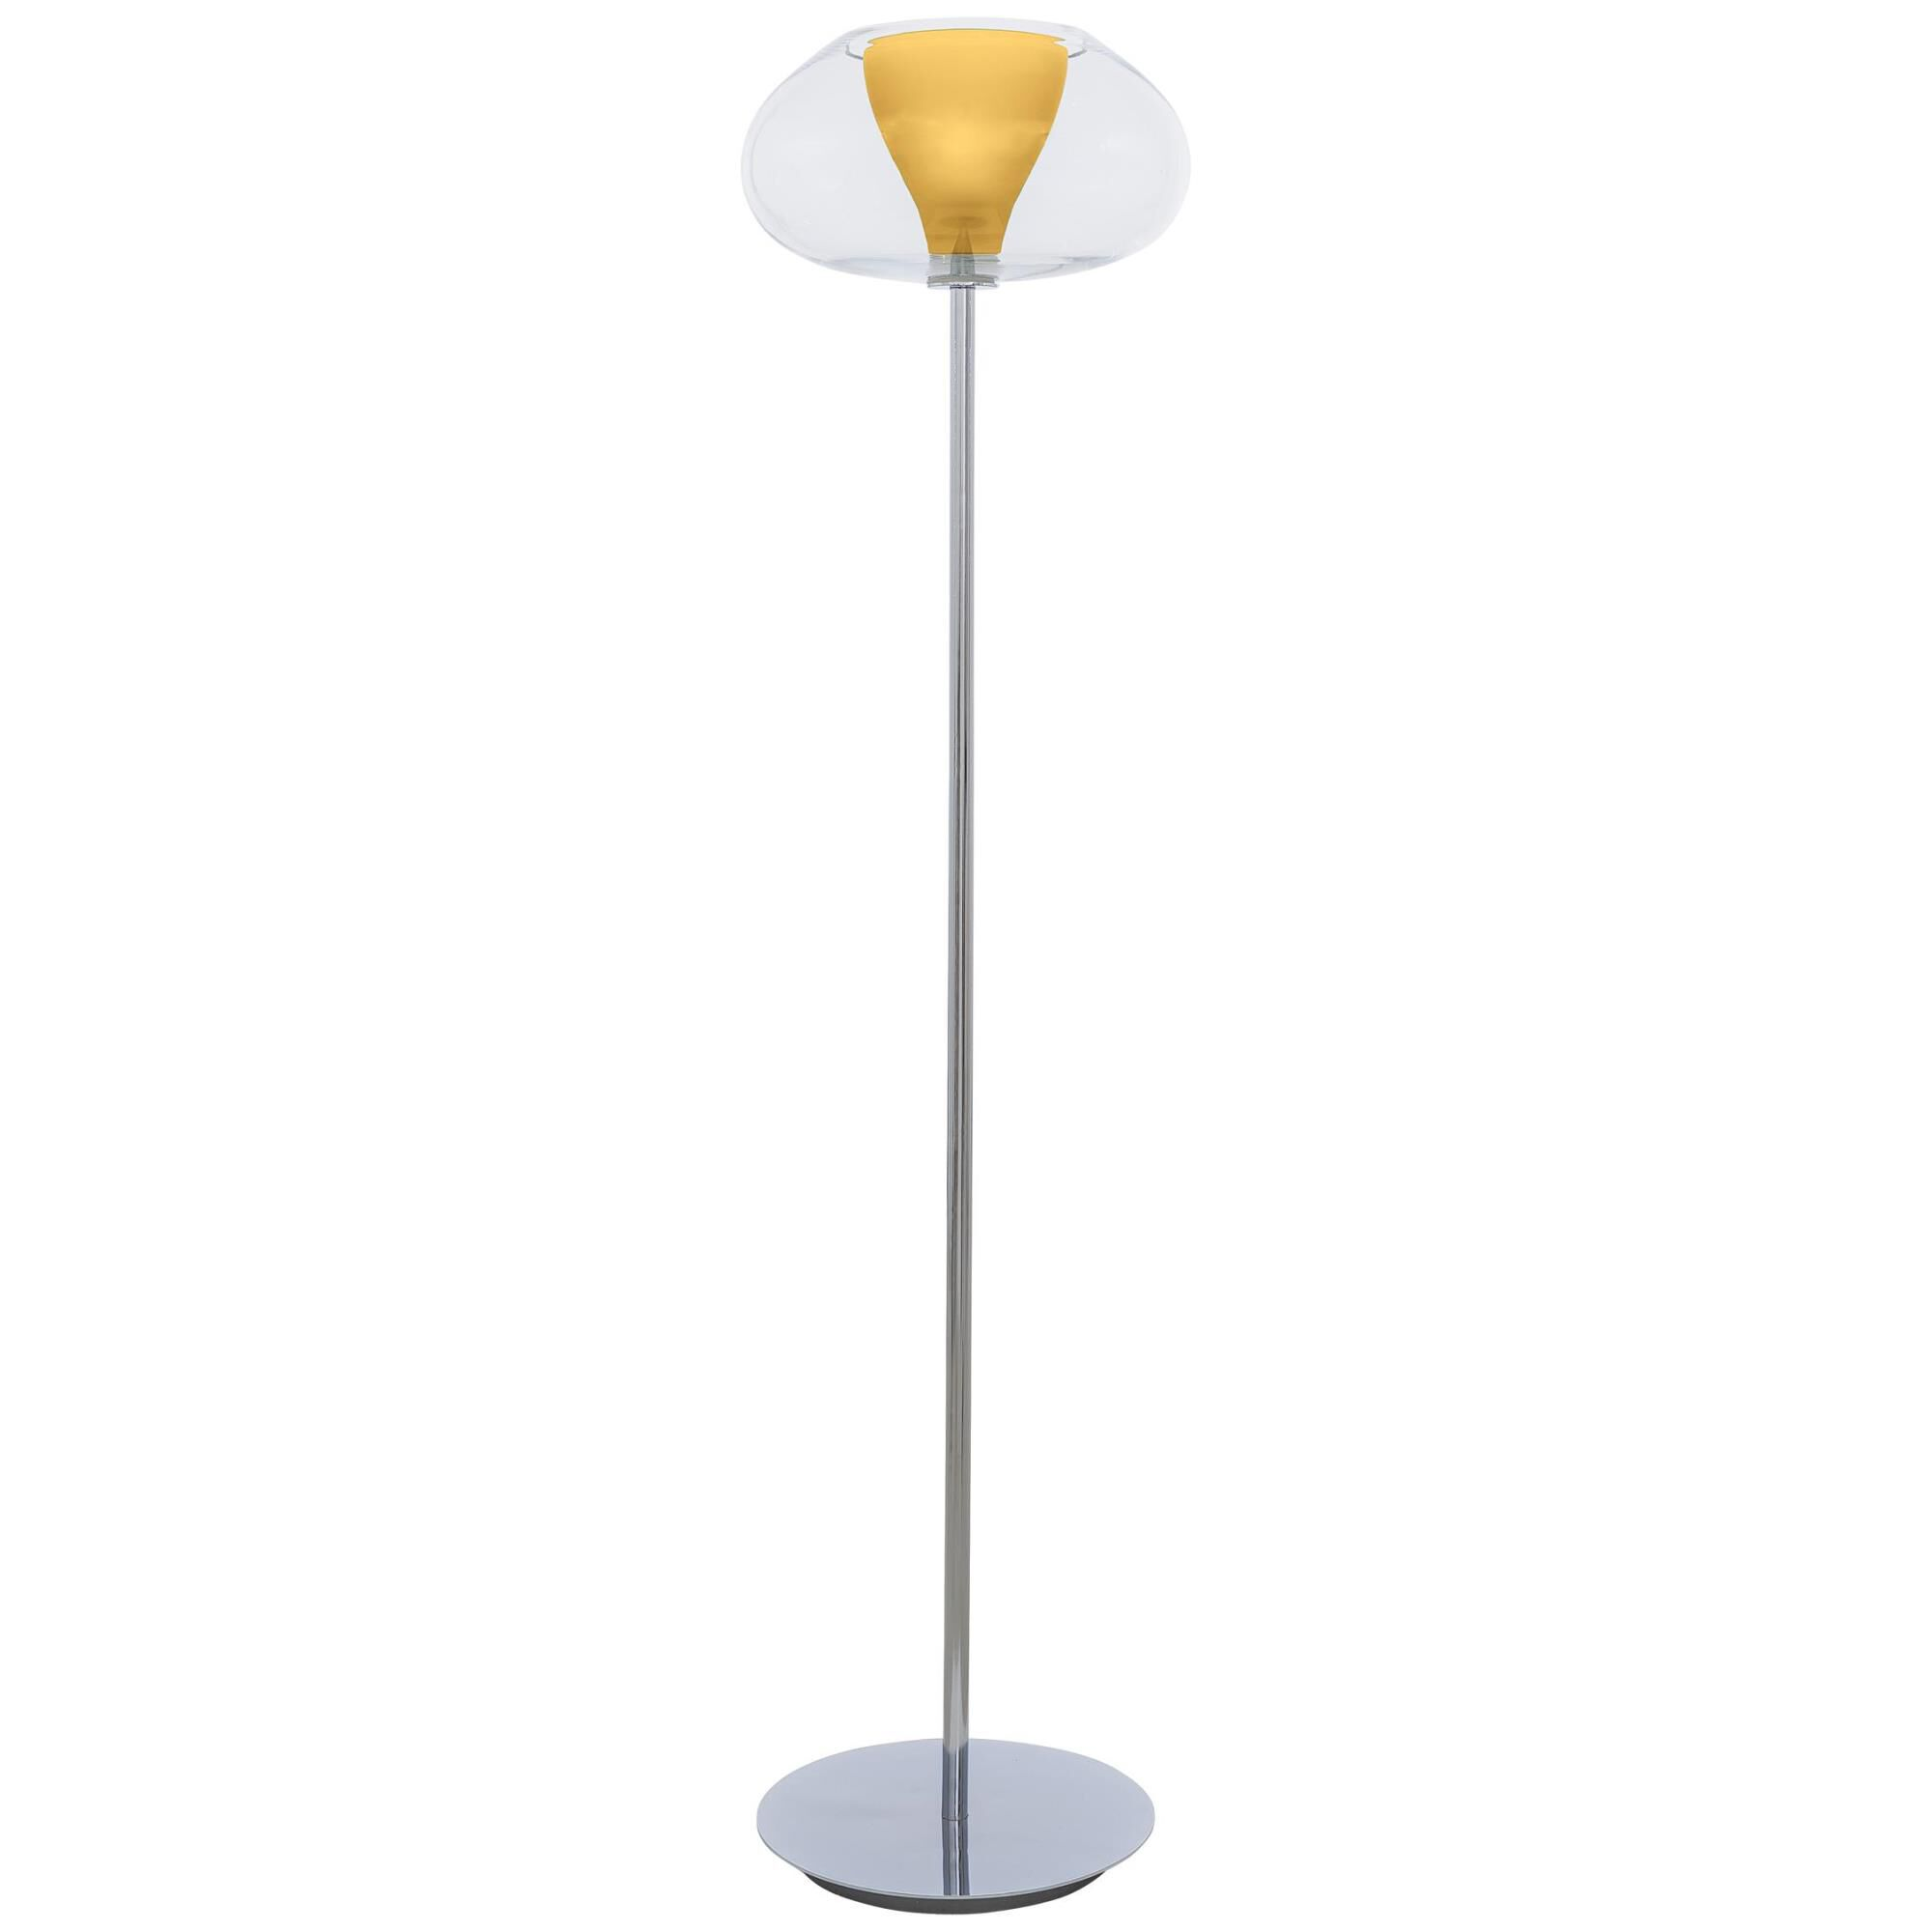 Kovacs Soft 68 Inch Torchiere Lamp Soft - P3803-077 - Modern Contemporary